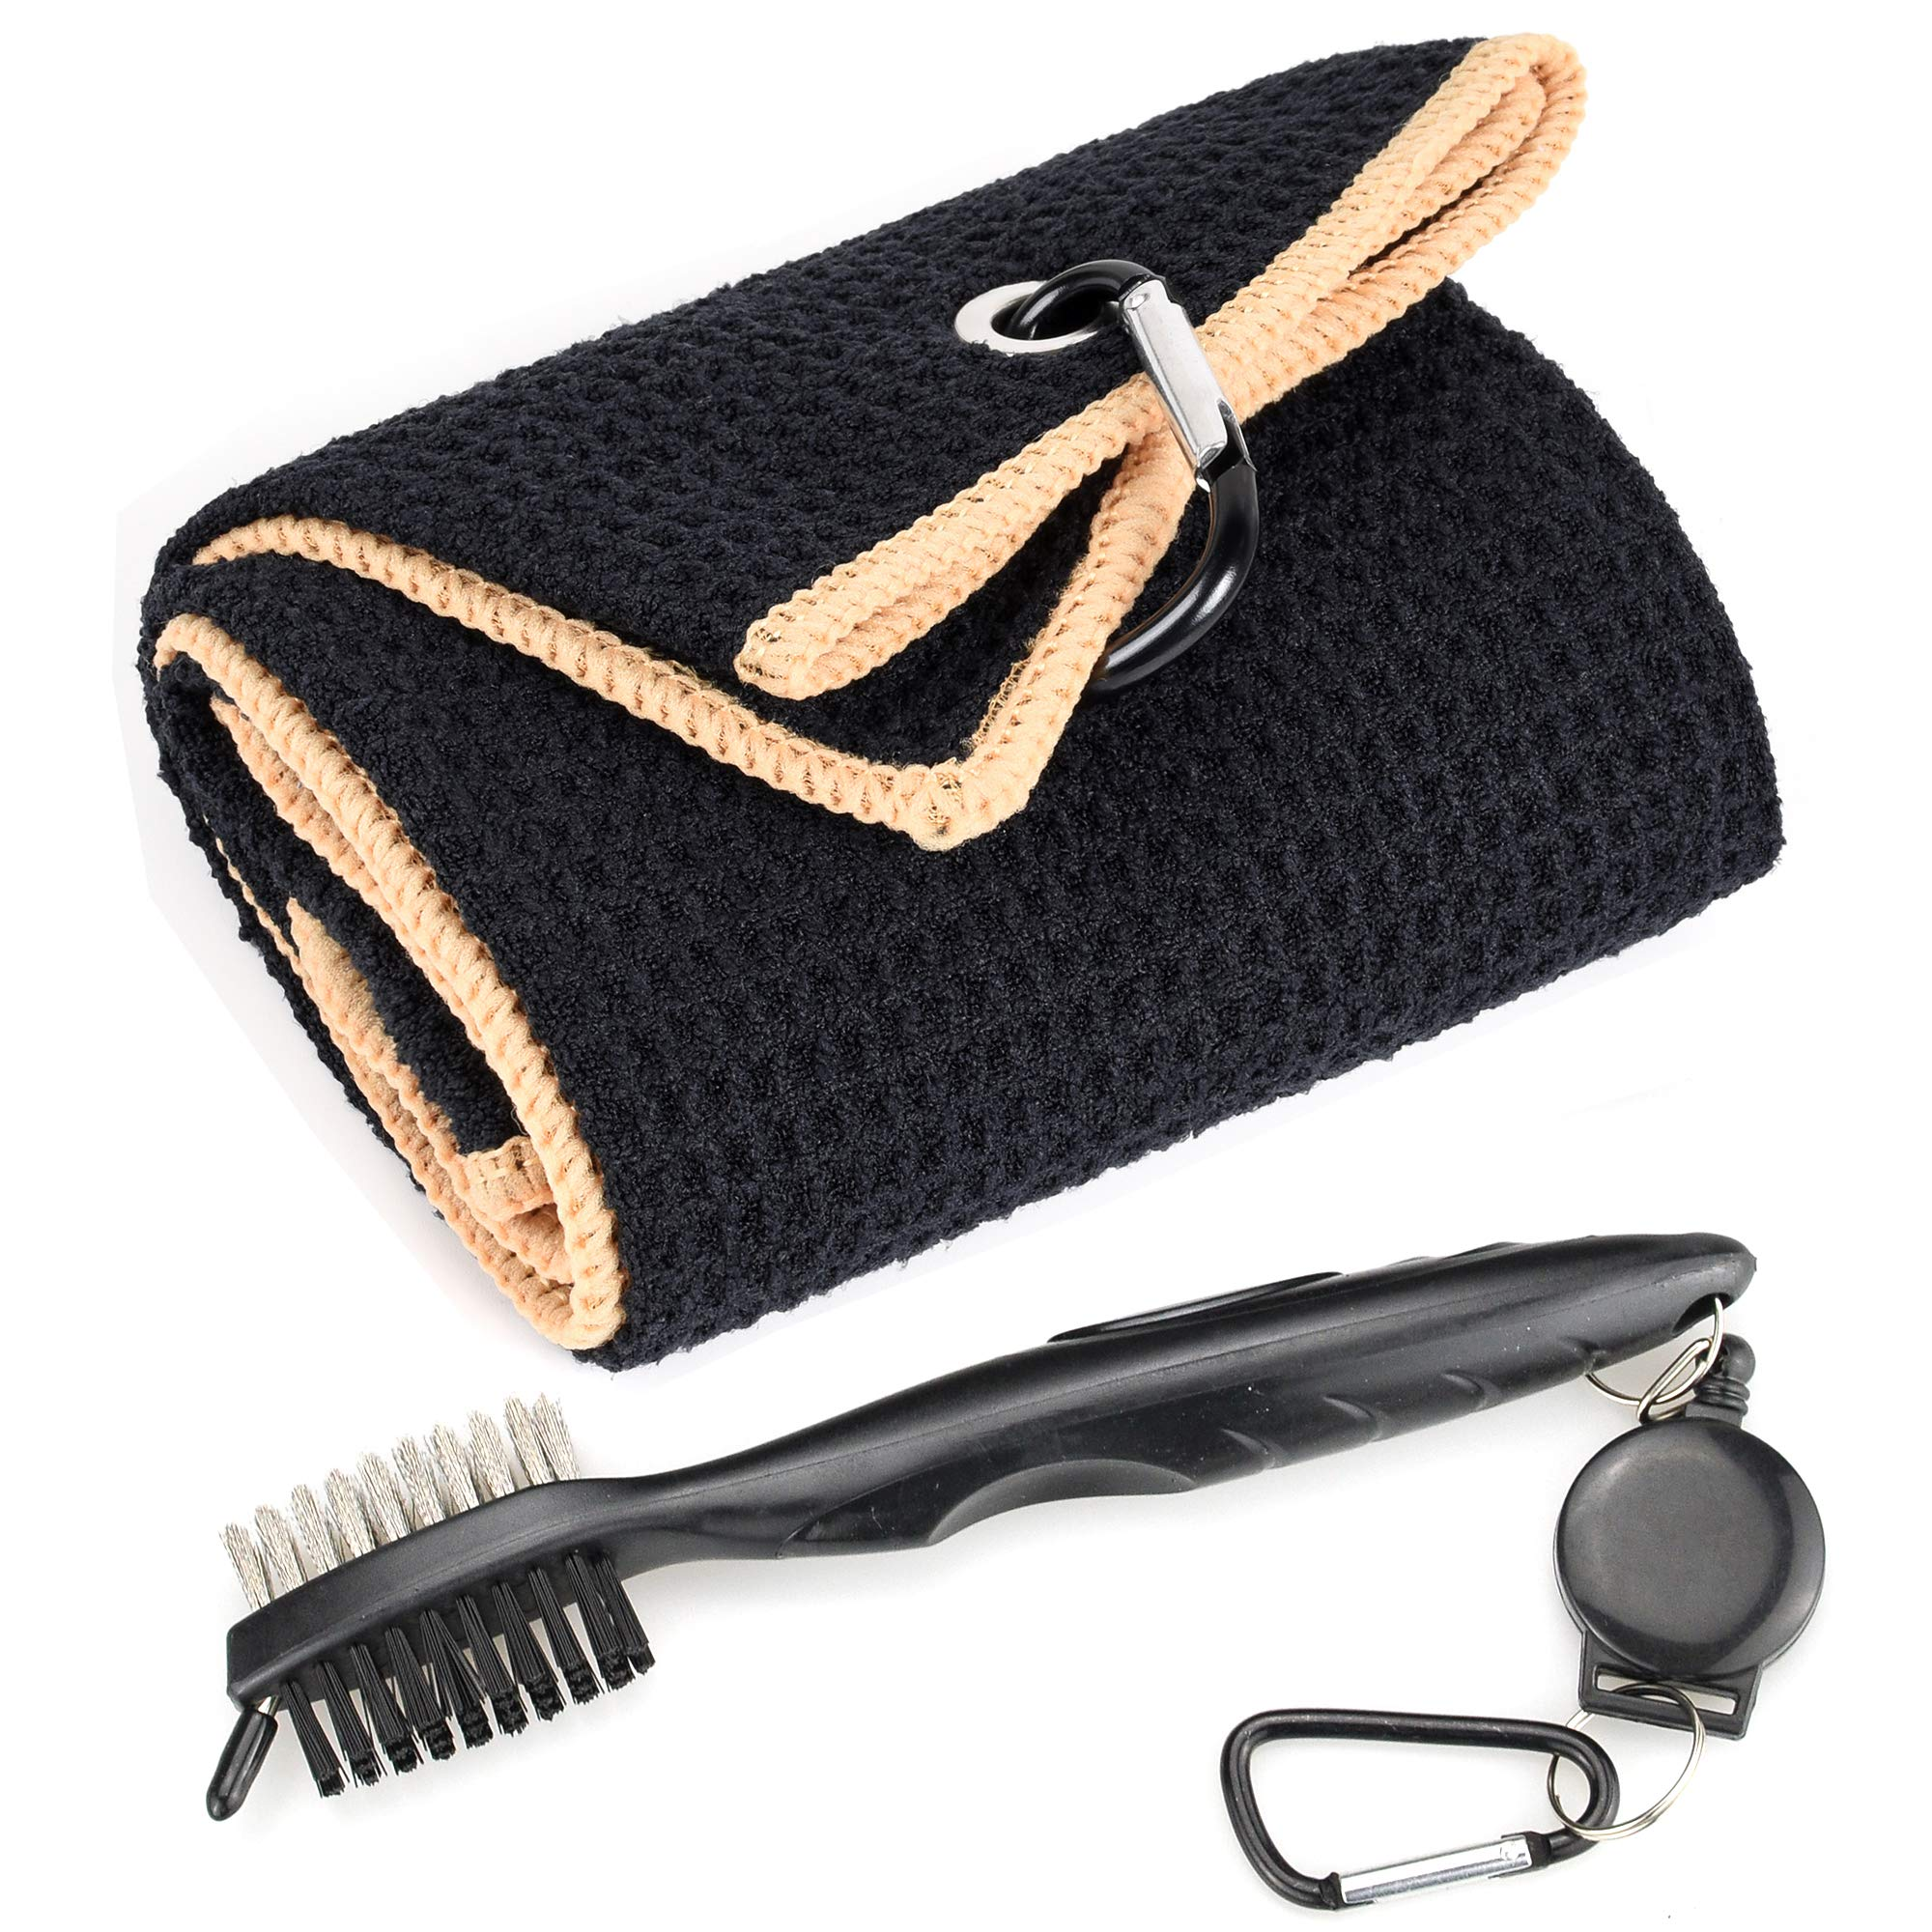 Mile High Life Microfiber Waffle Pattern Tri-fold Golf Towel | Brush Tool Kit with Club Groove Cleaner, Retractable Extension Cord and Clip (Black w/Yellow Towel+Black Brush) by Mile High Life